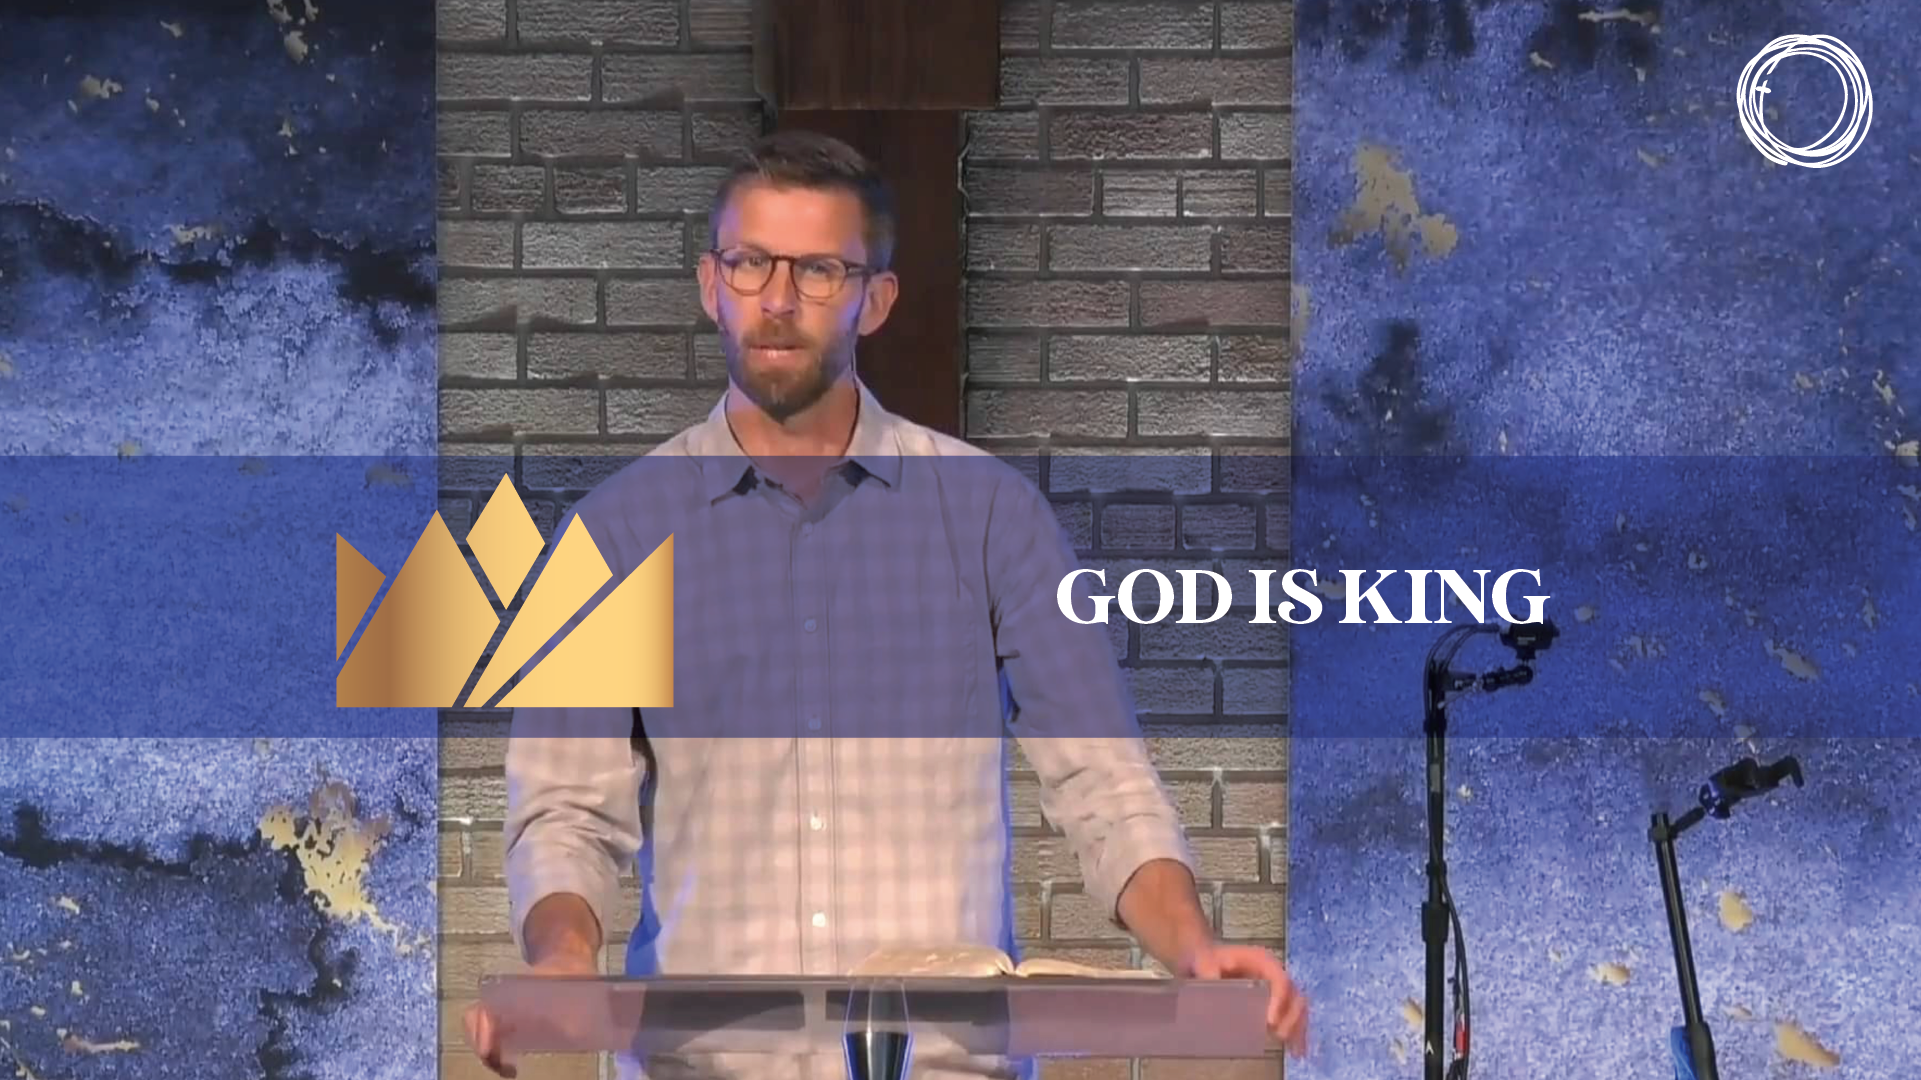 God is King: Tracing the Kingdom of God through the Old Testament